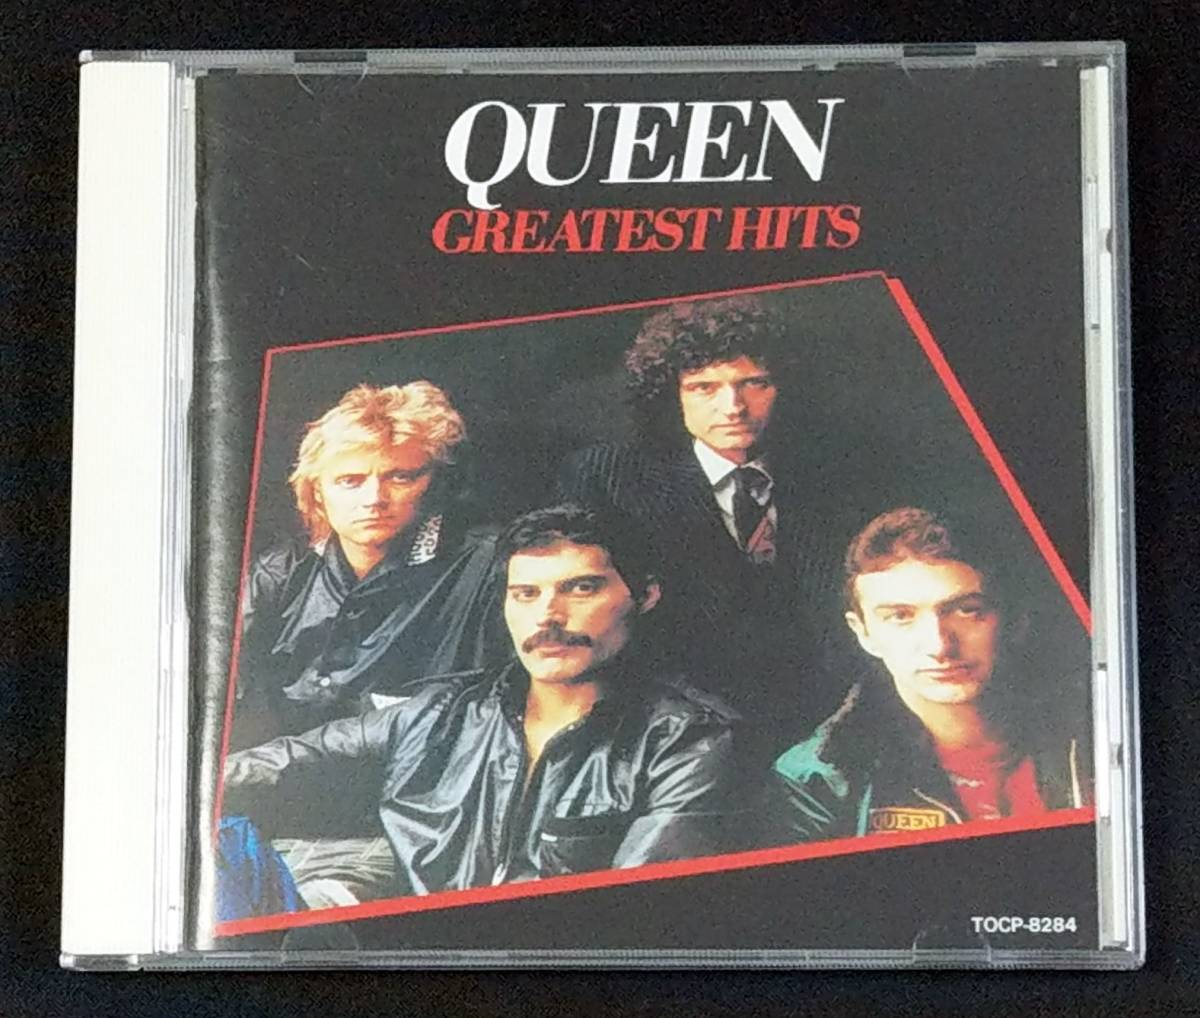 ★Queen クィーン Greatest Hits★国内盤CD(良品)